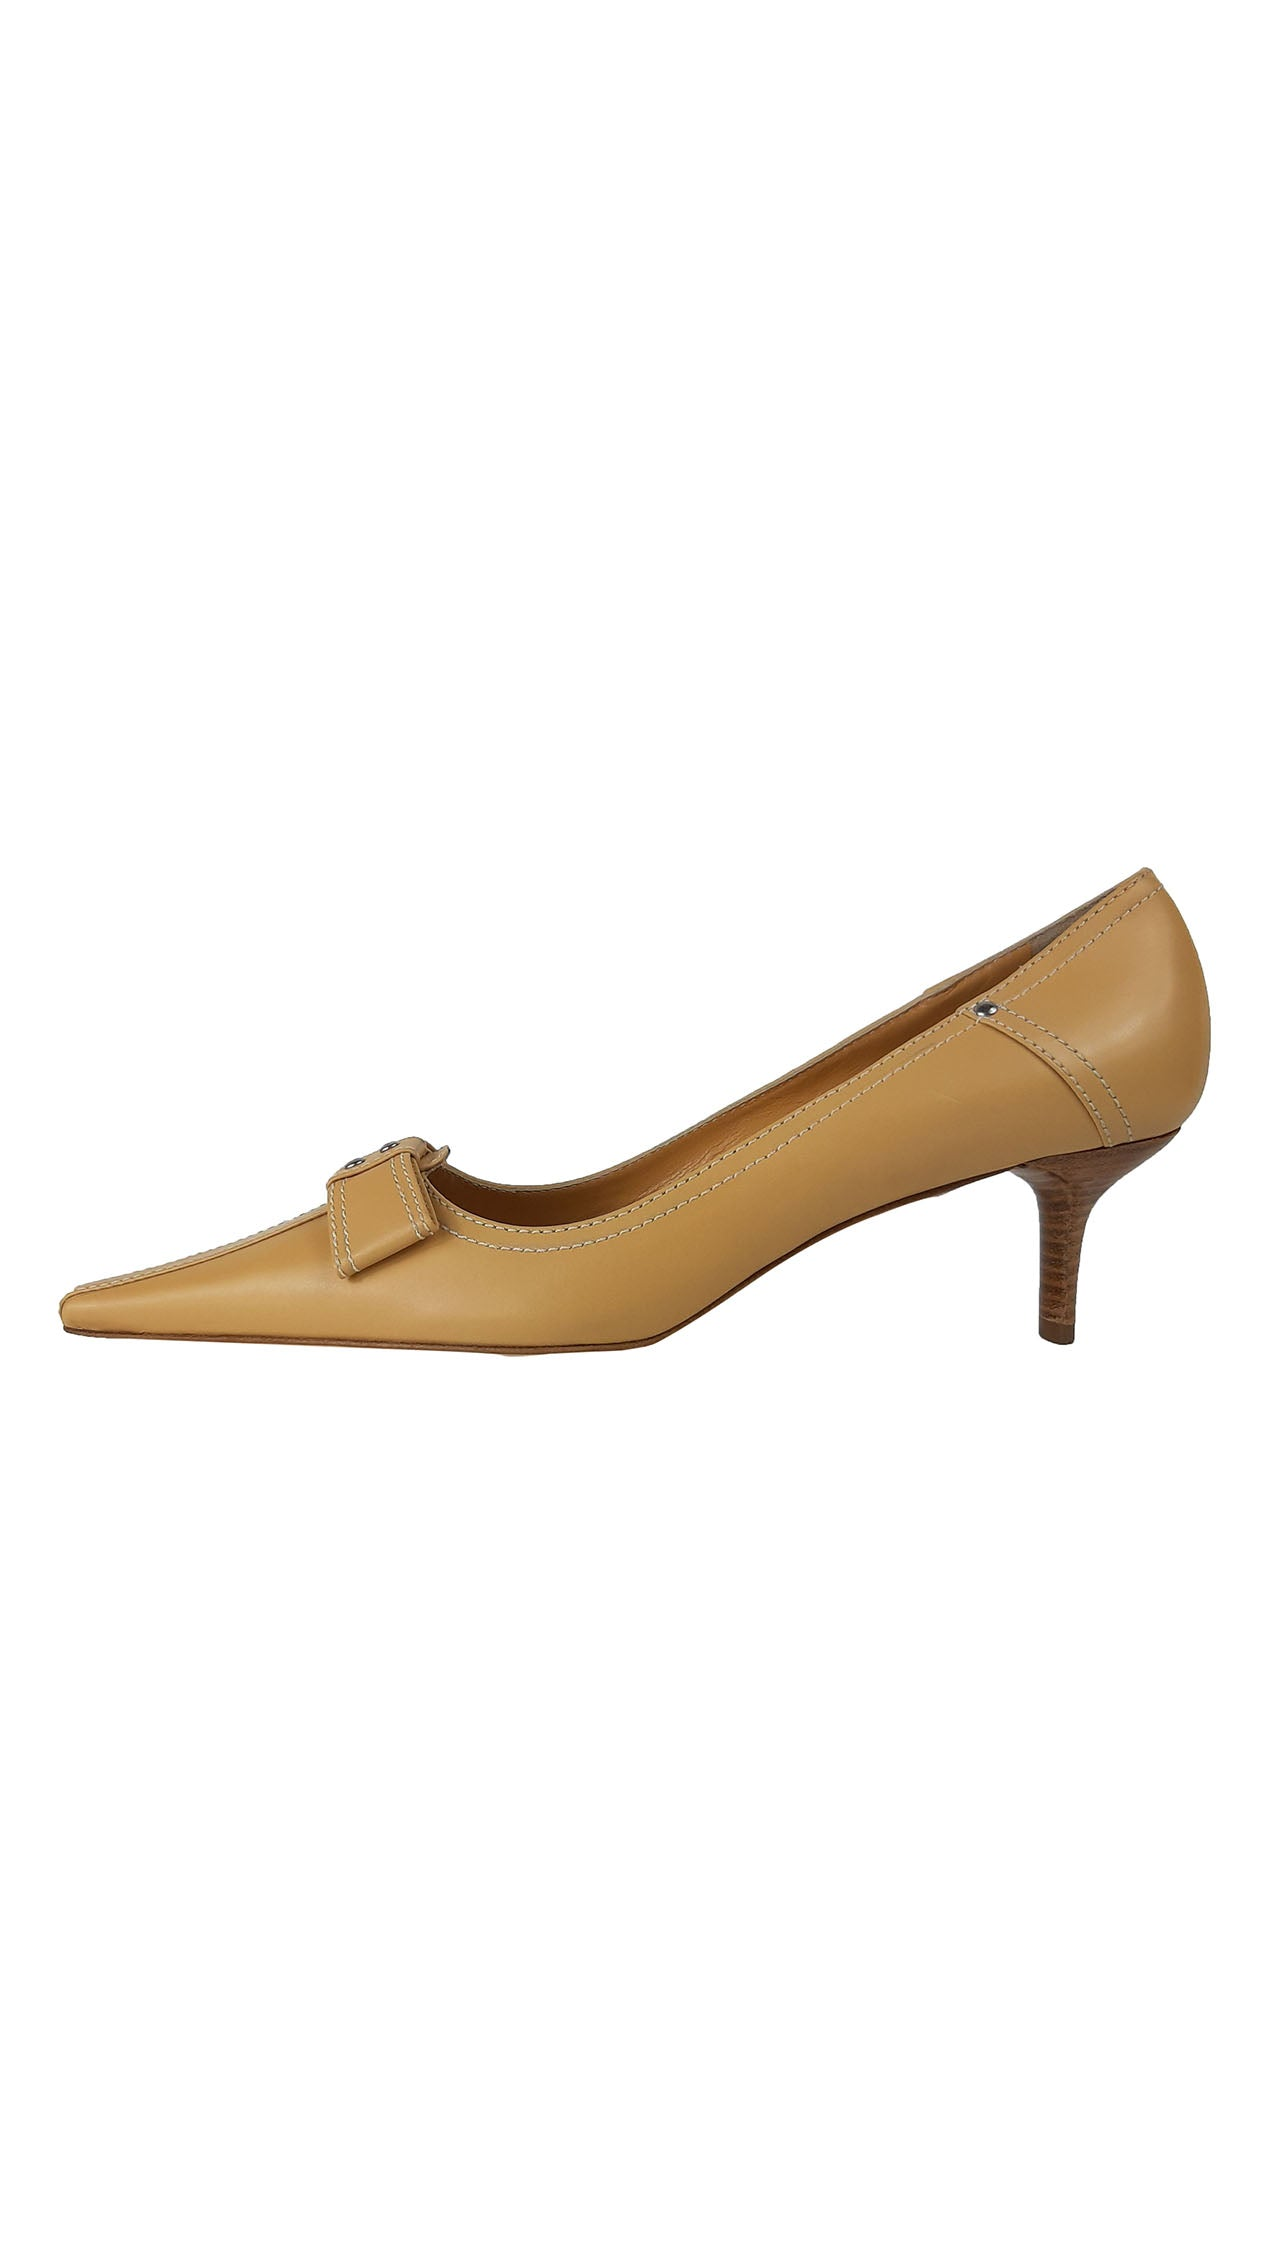 The Saddler Camel Shoes with Leather Bow Detail Size 39 (EU)